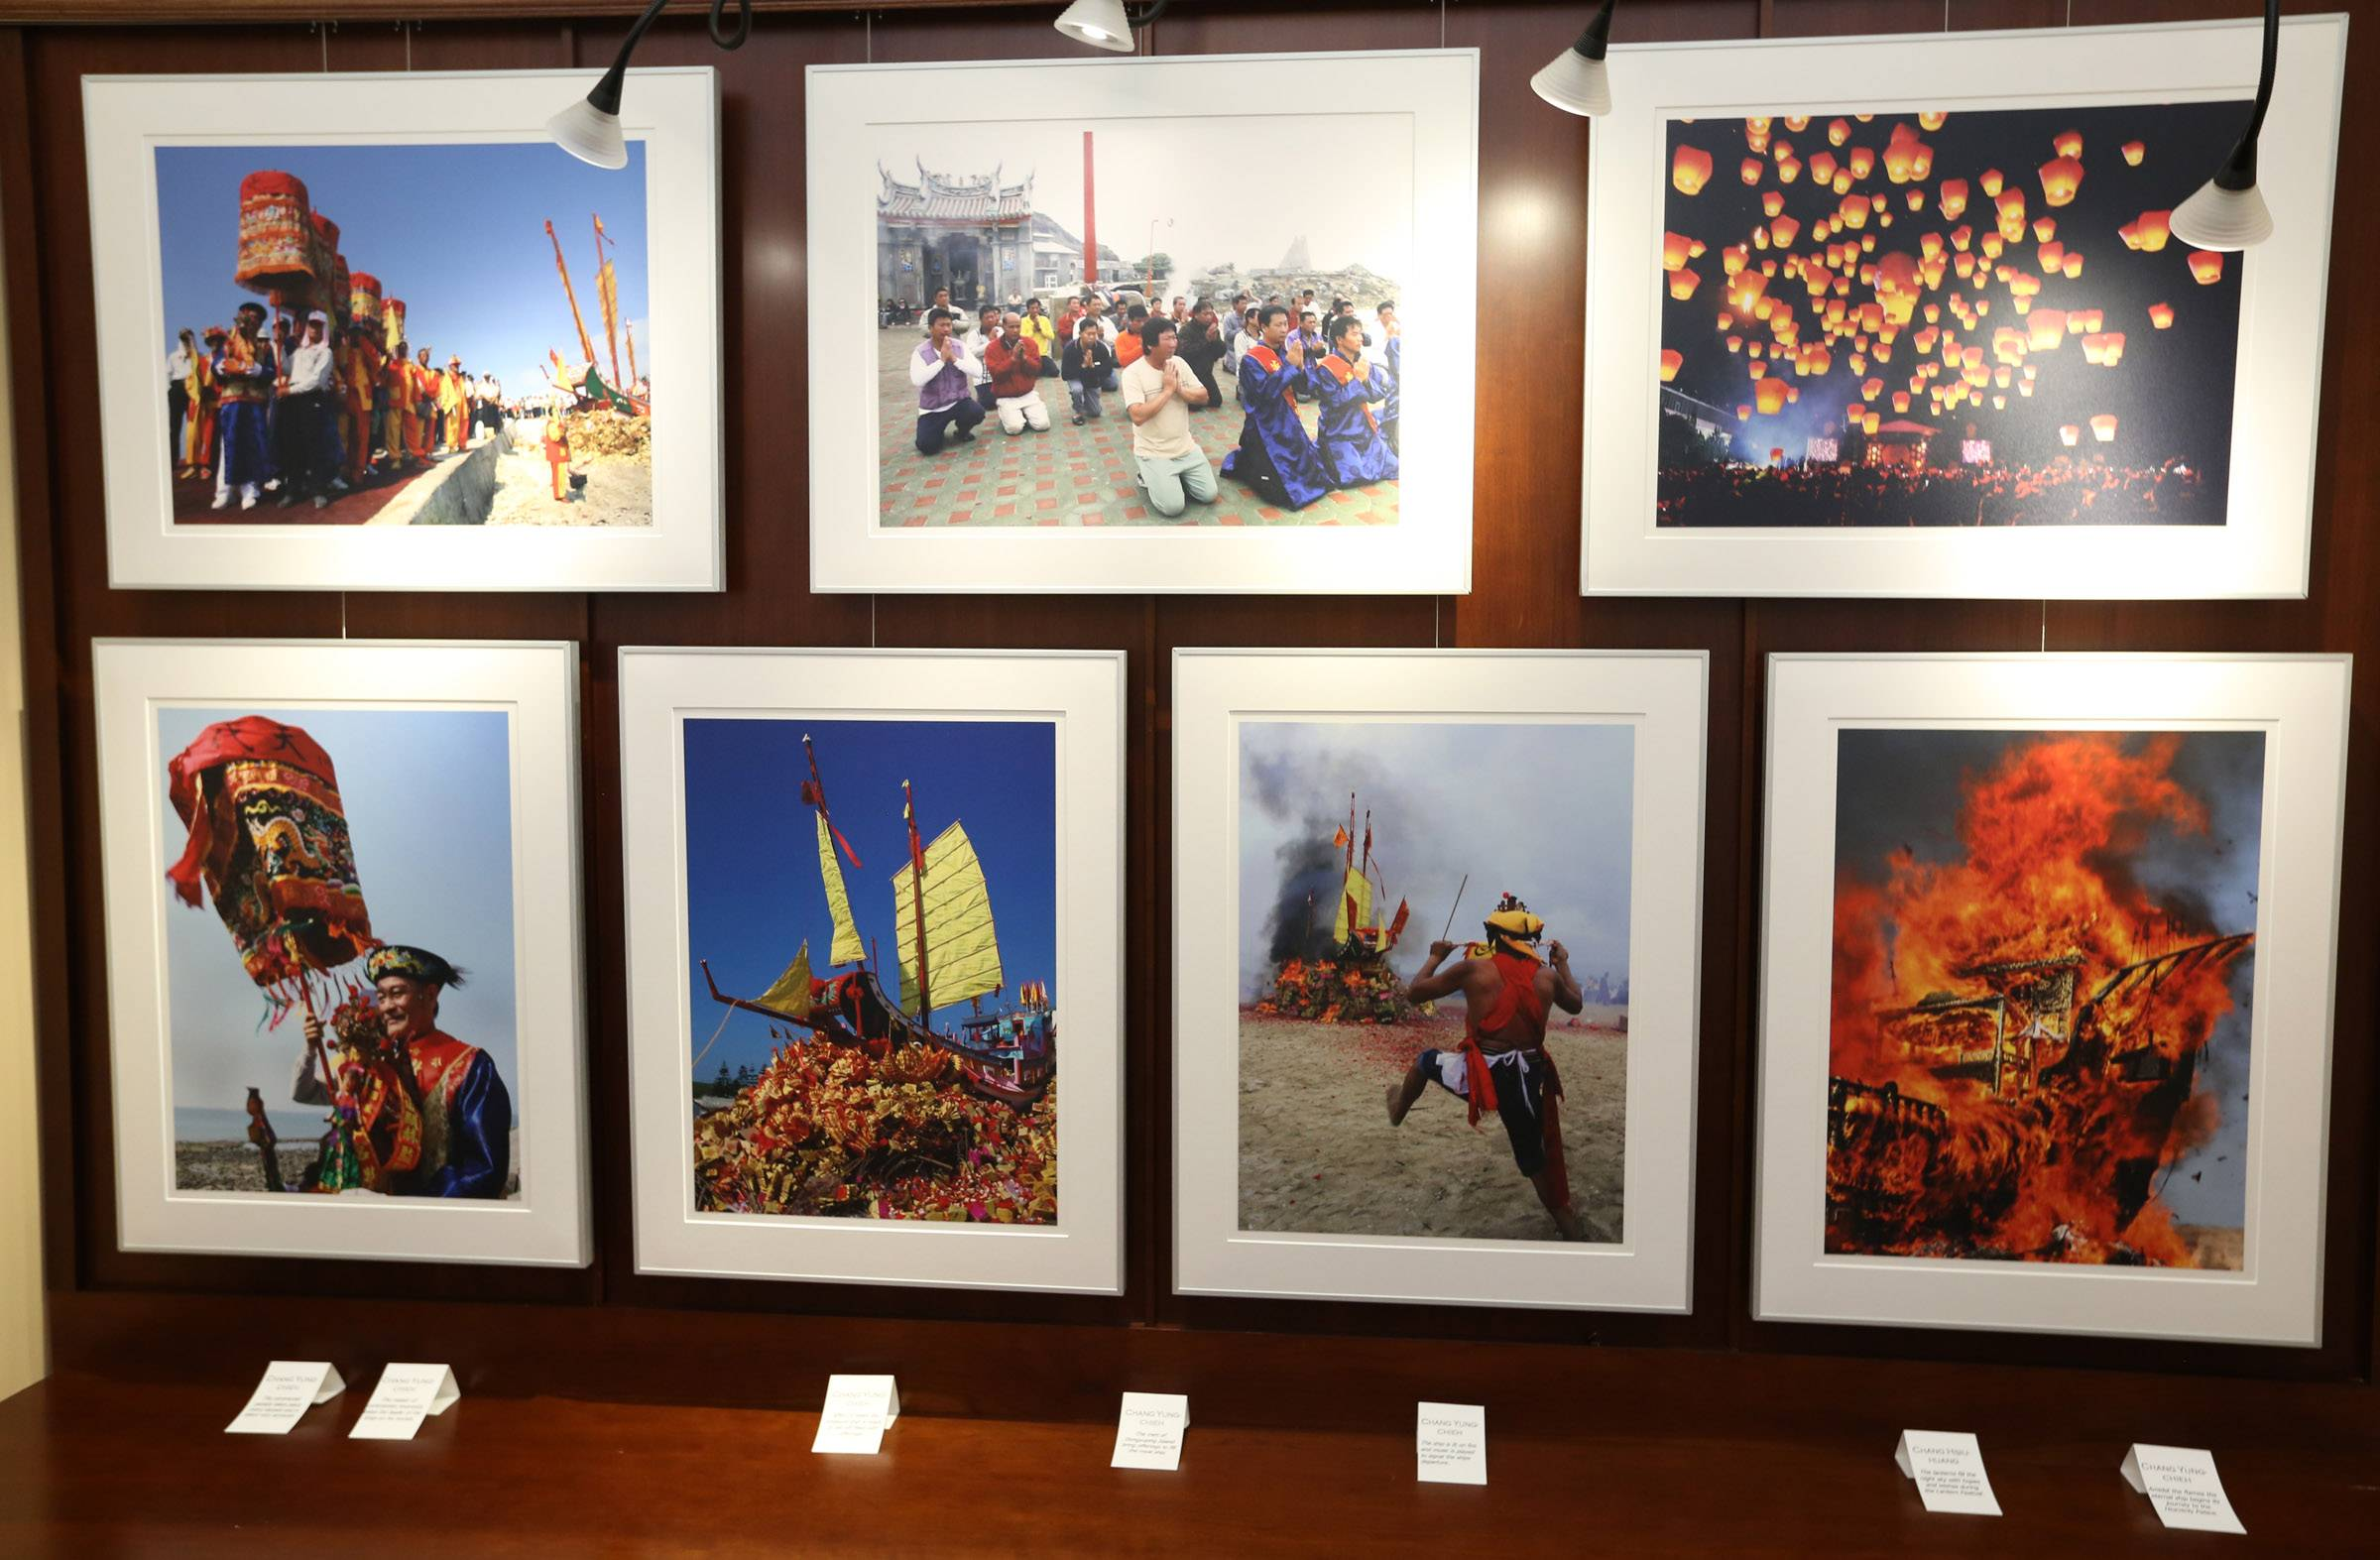 The exhibit runs through Aug. 30 at the village hall's art gallery.